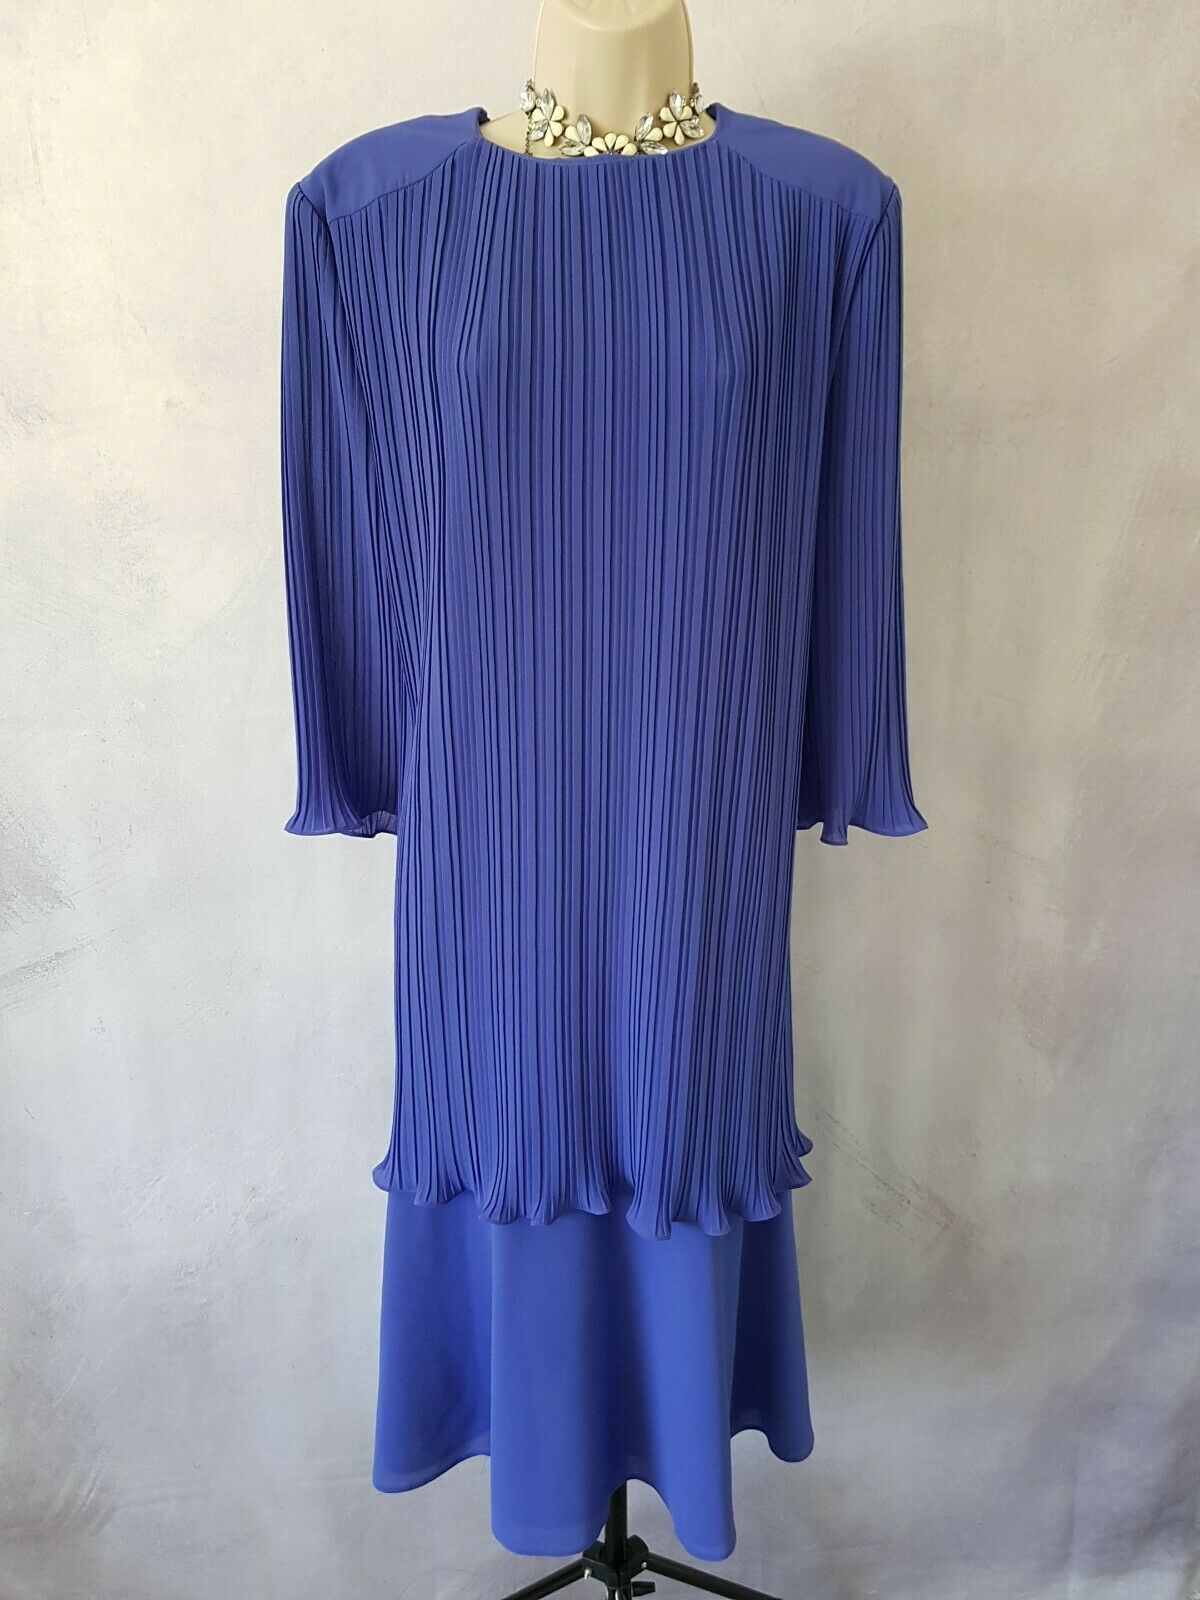 Helenel Mother of The Bride Dress Purple Padded Wedding Occasion Size UK 18